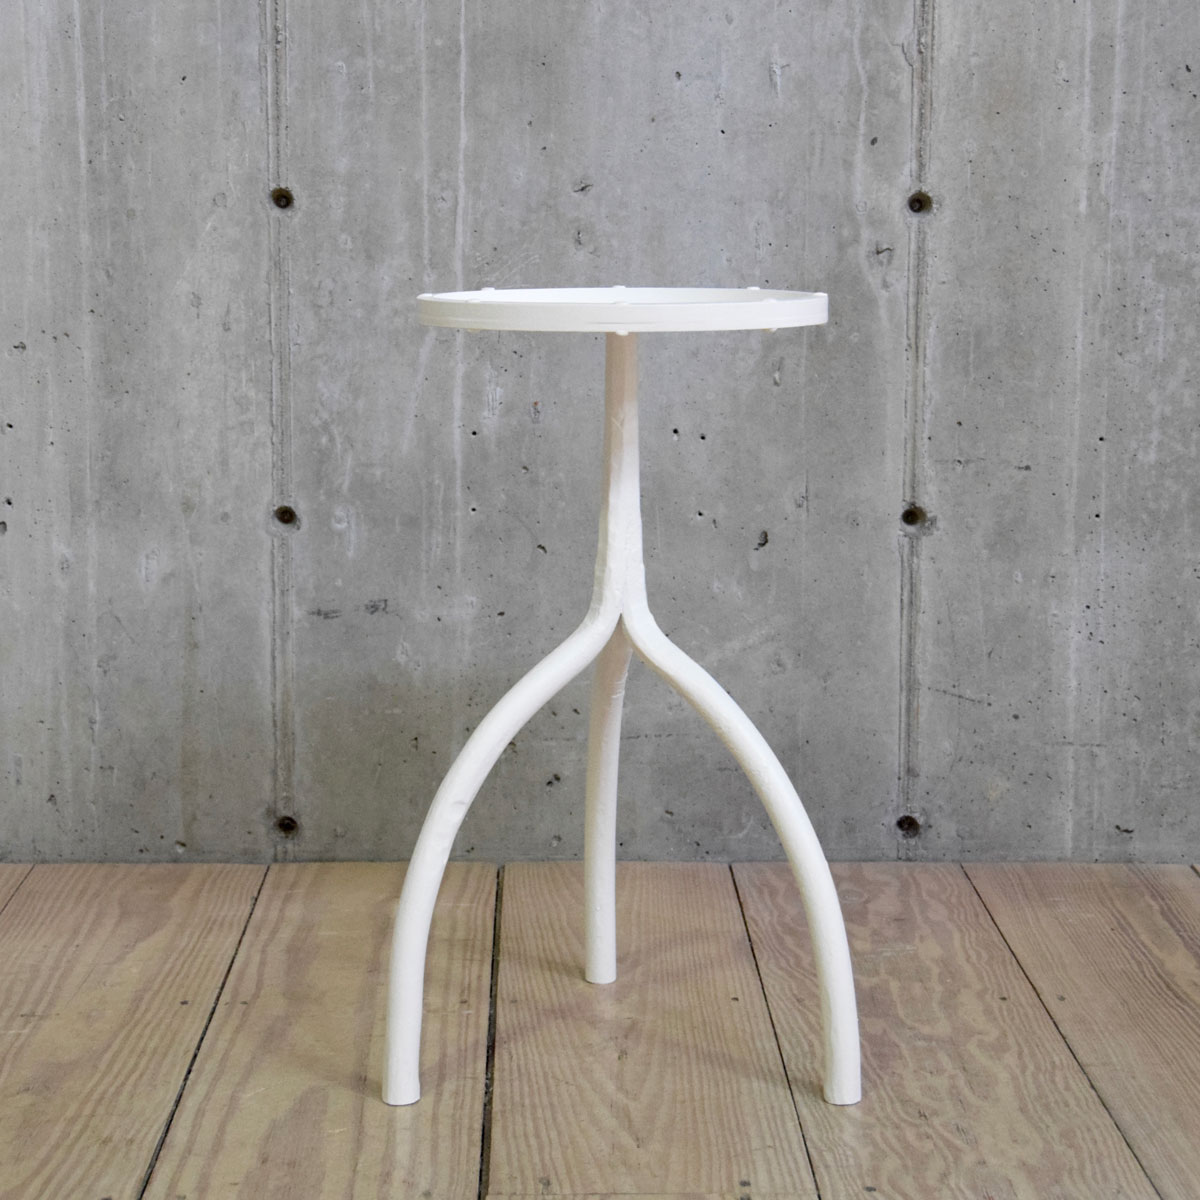 23″ Drink Table with Round Top and Gesso-White Painted Finish $800